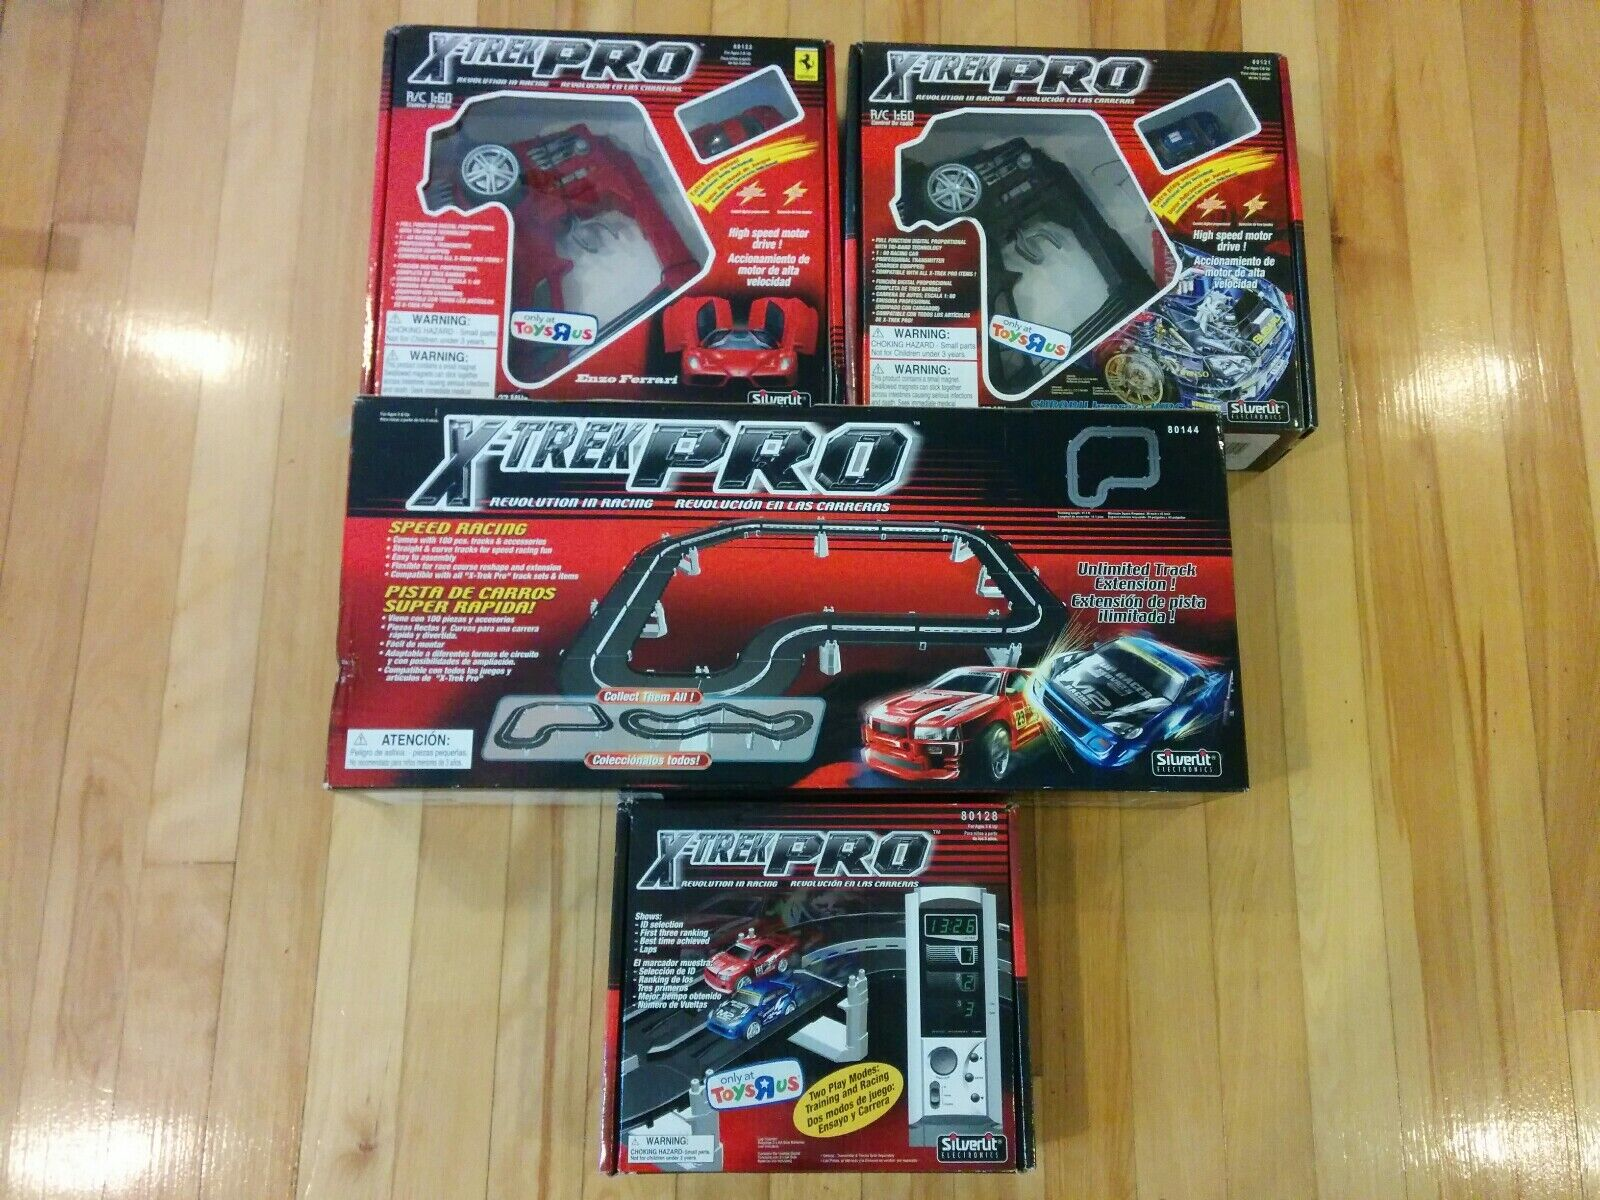 BRAND NY SEALD silverlit X-Trek Pro Revolution Race Race Car Racing Paket